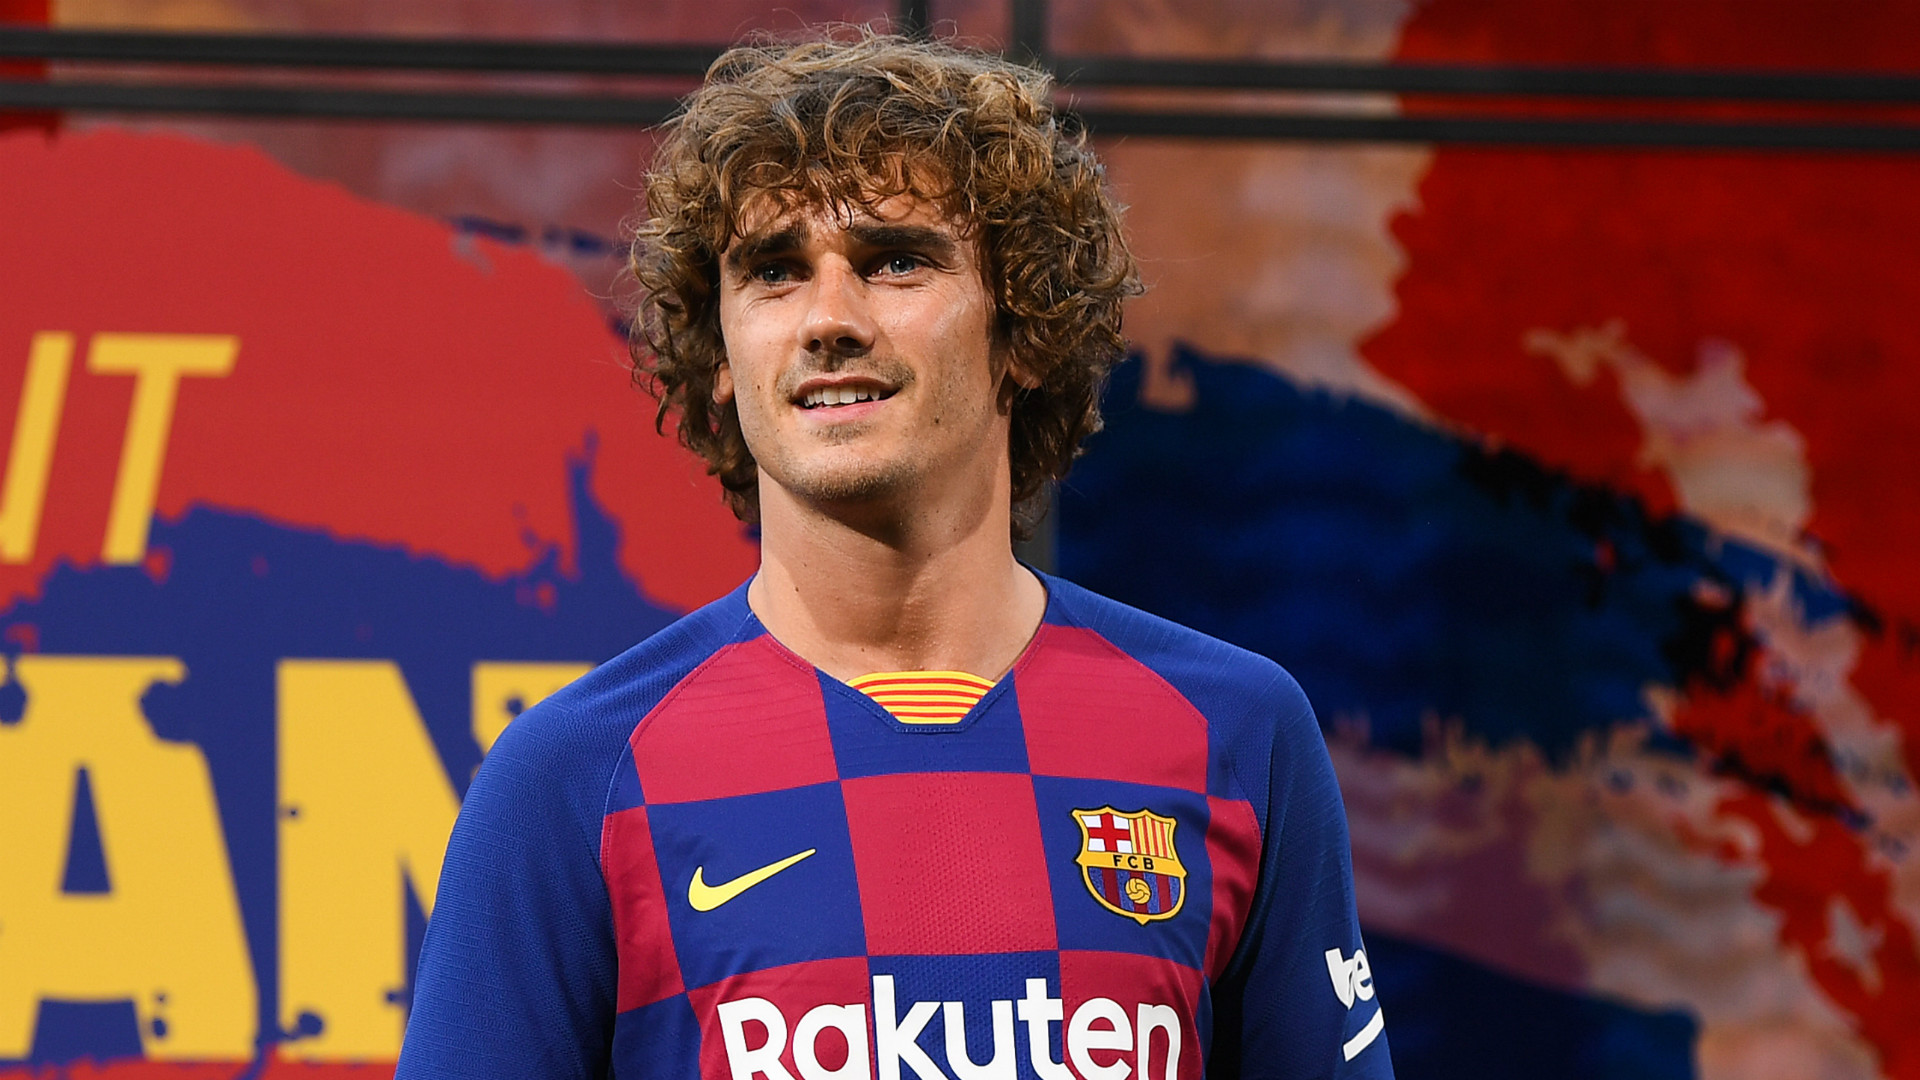 'I cried tears of happiness' - Griezmann reveals overwhelming emotions after Barcelona move